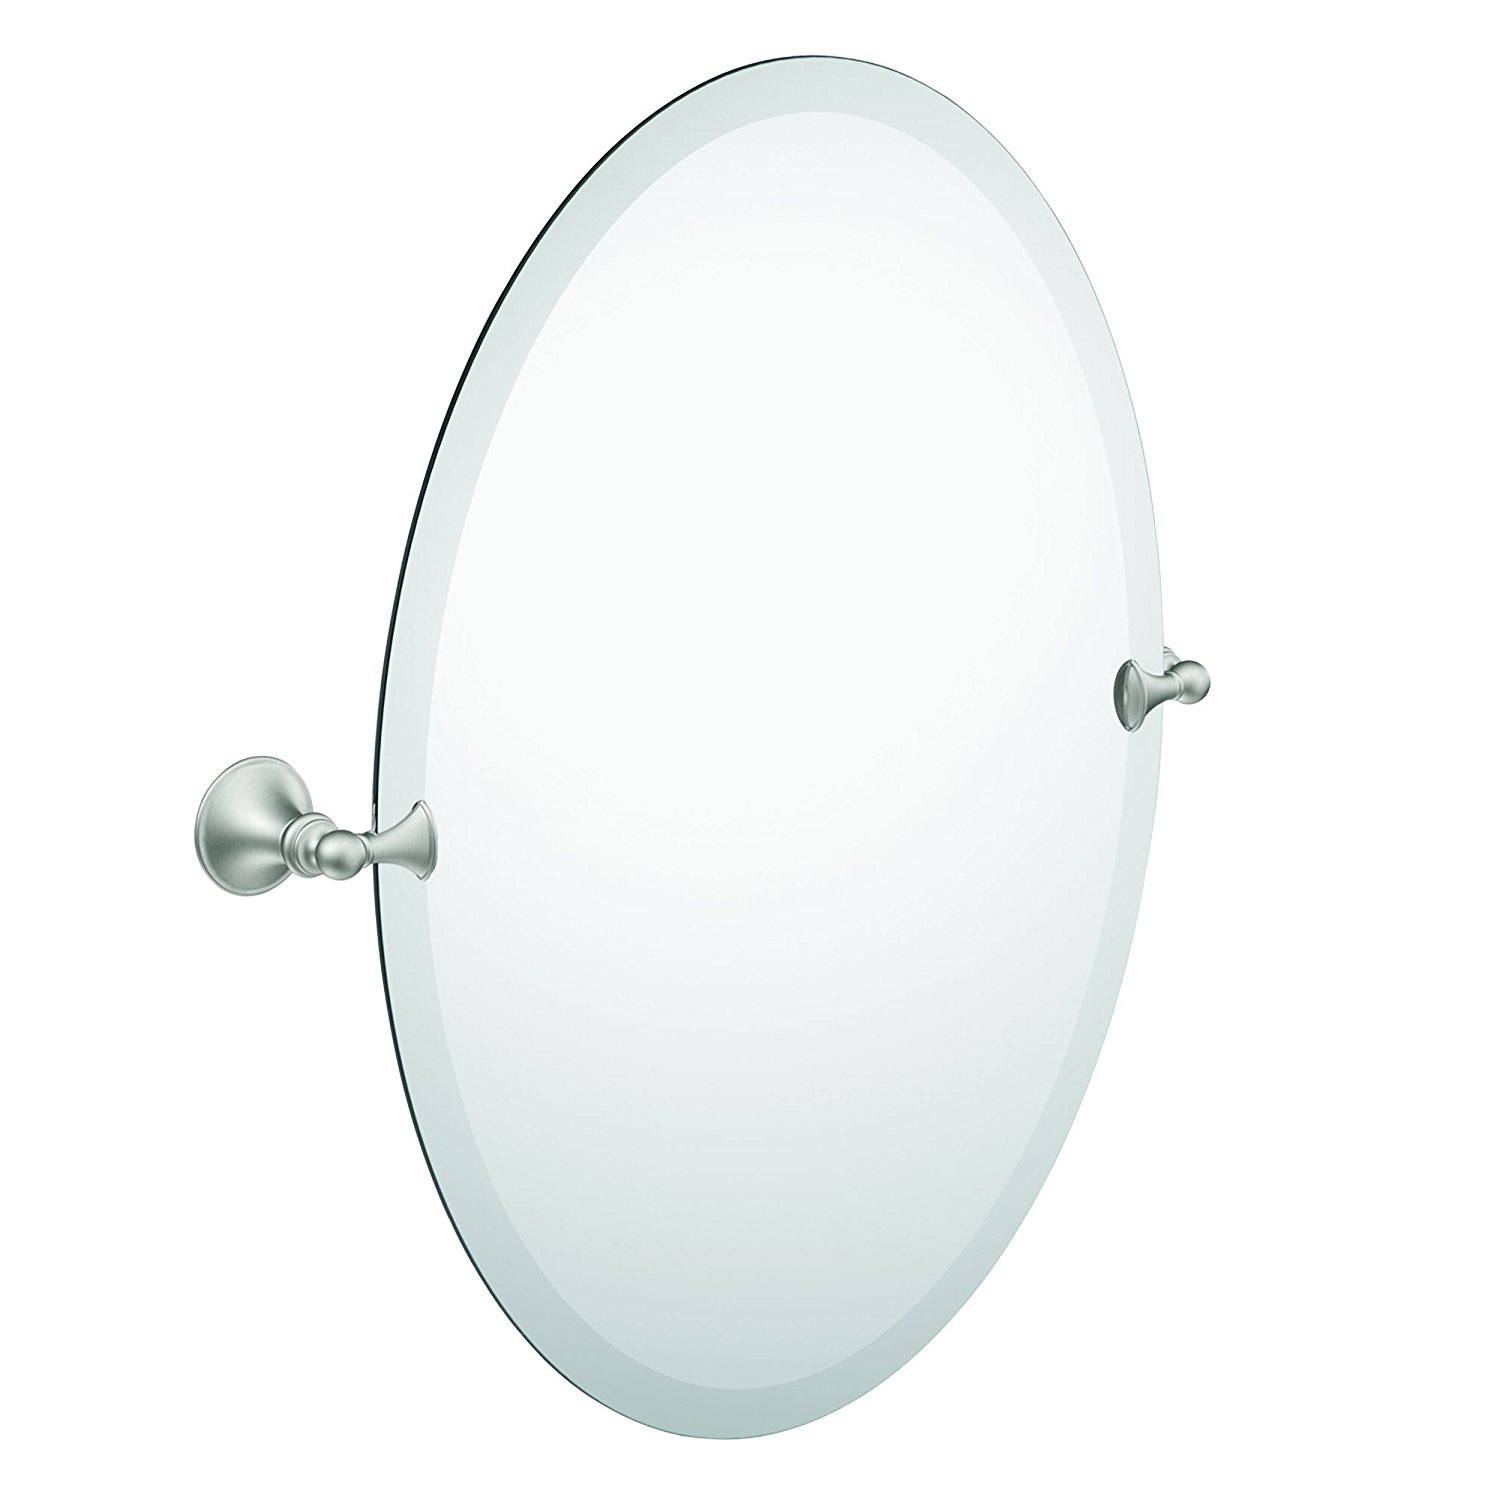 Moen Glenshire Brushed Nickel Bathroom Mirror